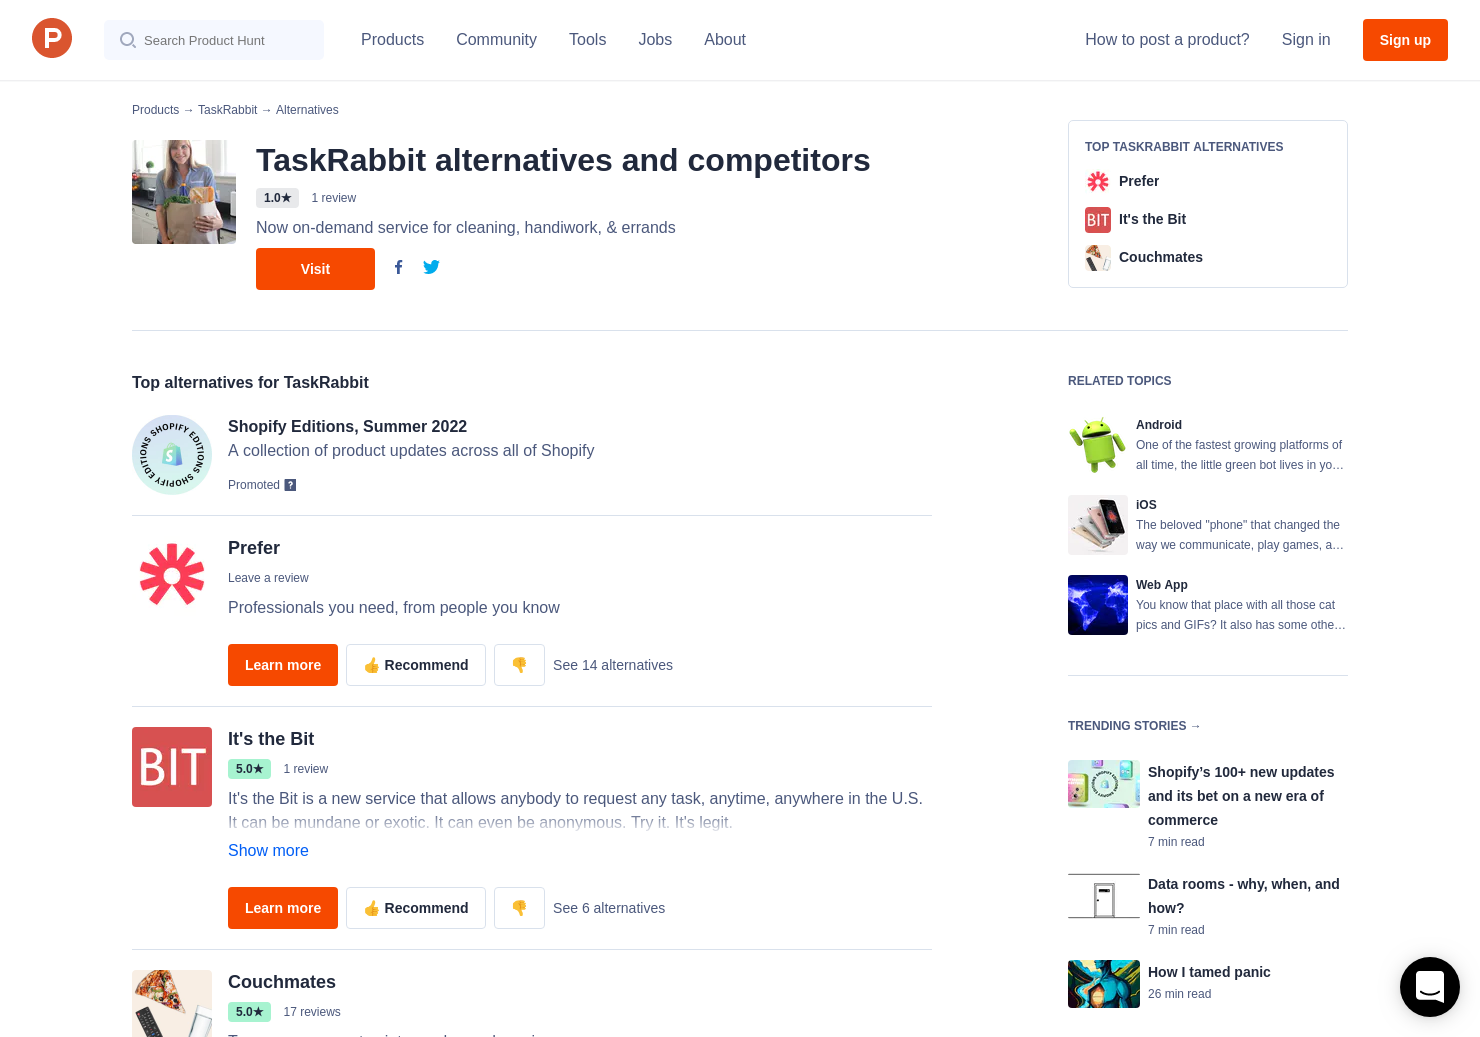 14 Alternatives to TaskRabbit for Android, iPhone   Product Hunt